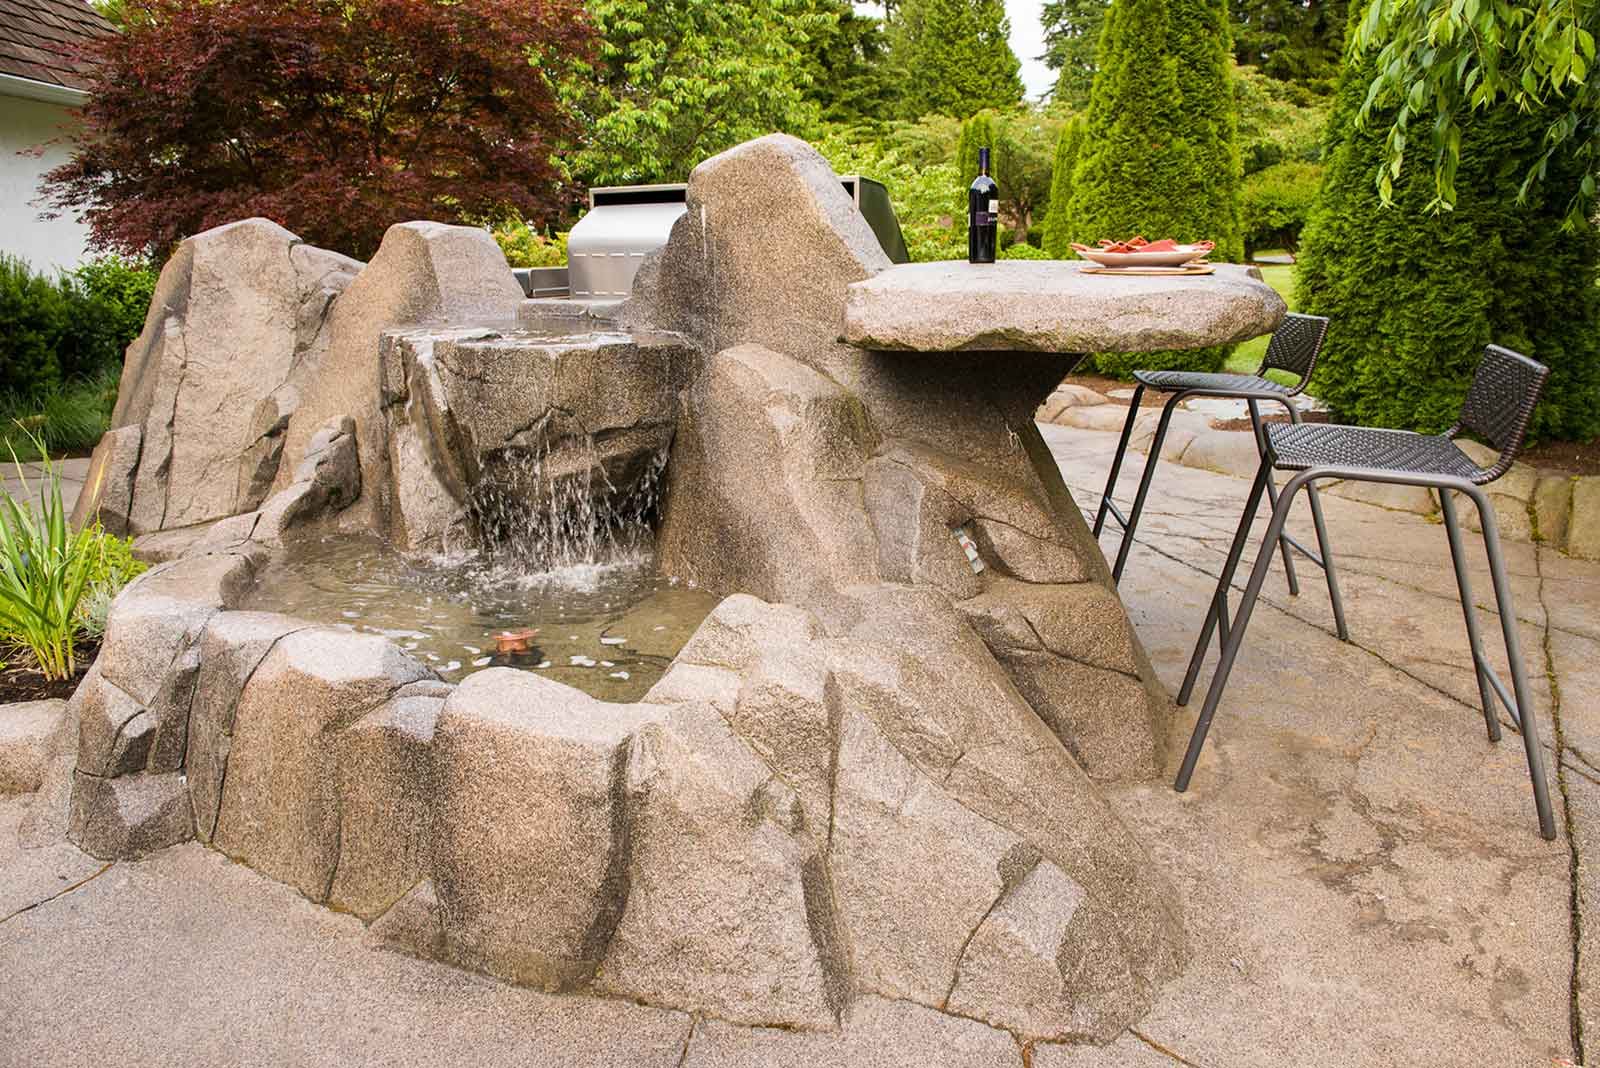 Artificial rock work water fall and fountain